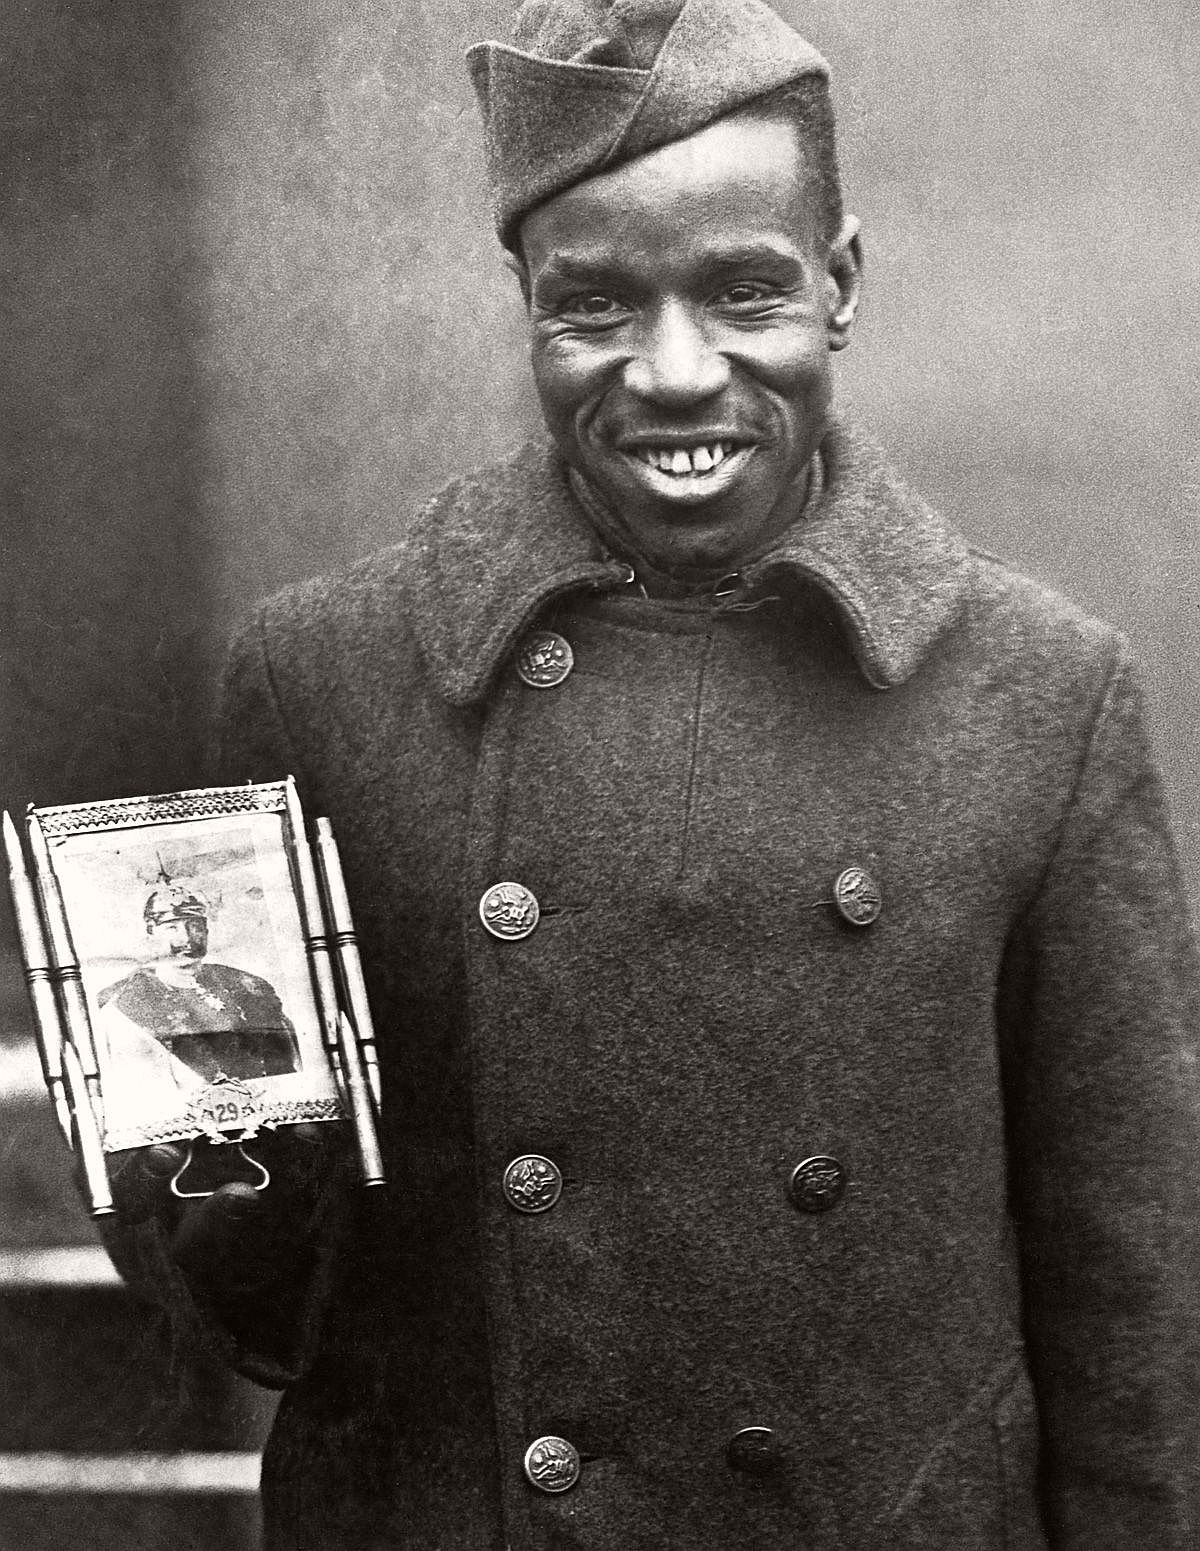 Cpl. Fred McIntyre of the 369th poses with a bullet-framed photo of Kaiser Wilhelm which he carries for good luck, c.1918. (Corbis)